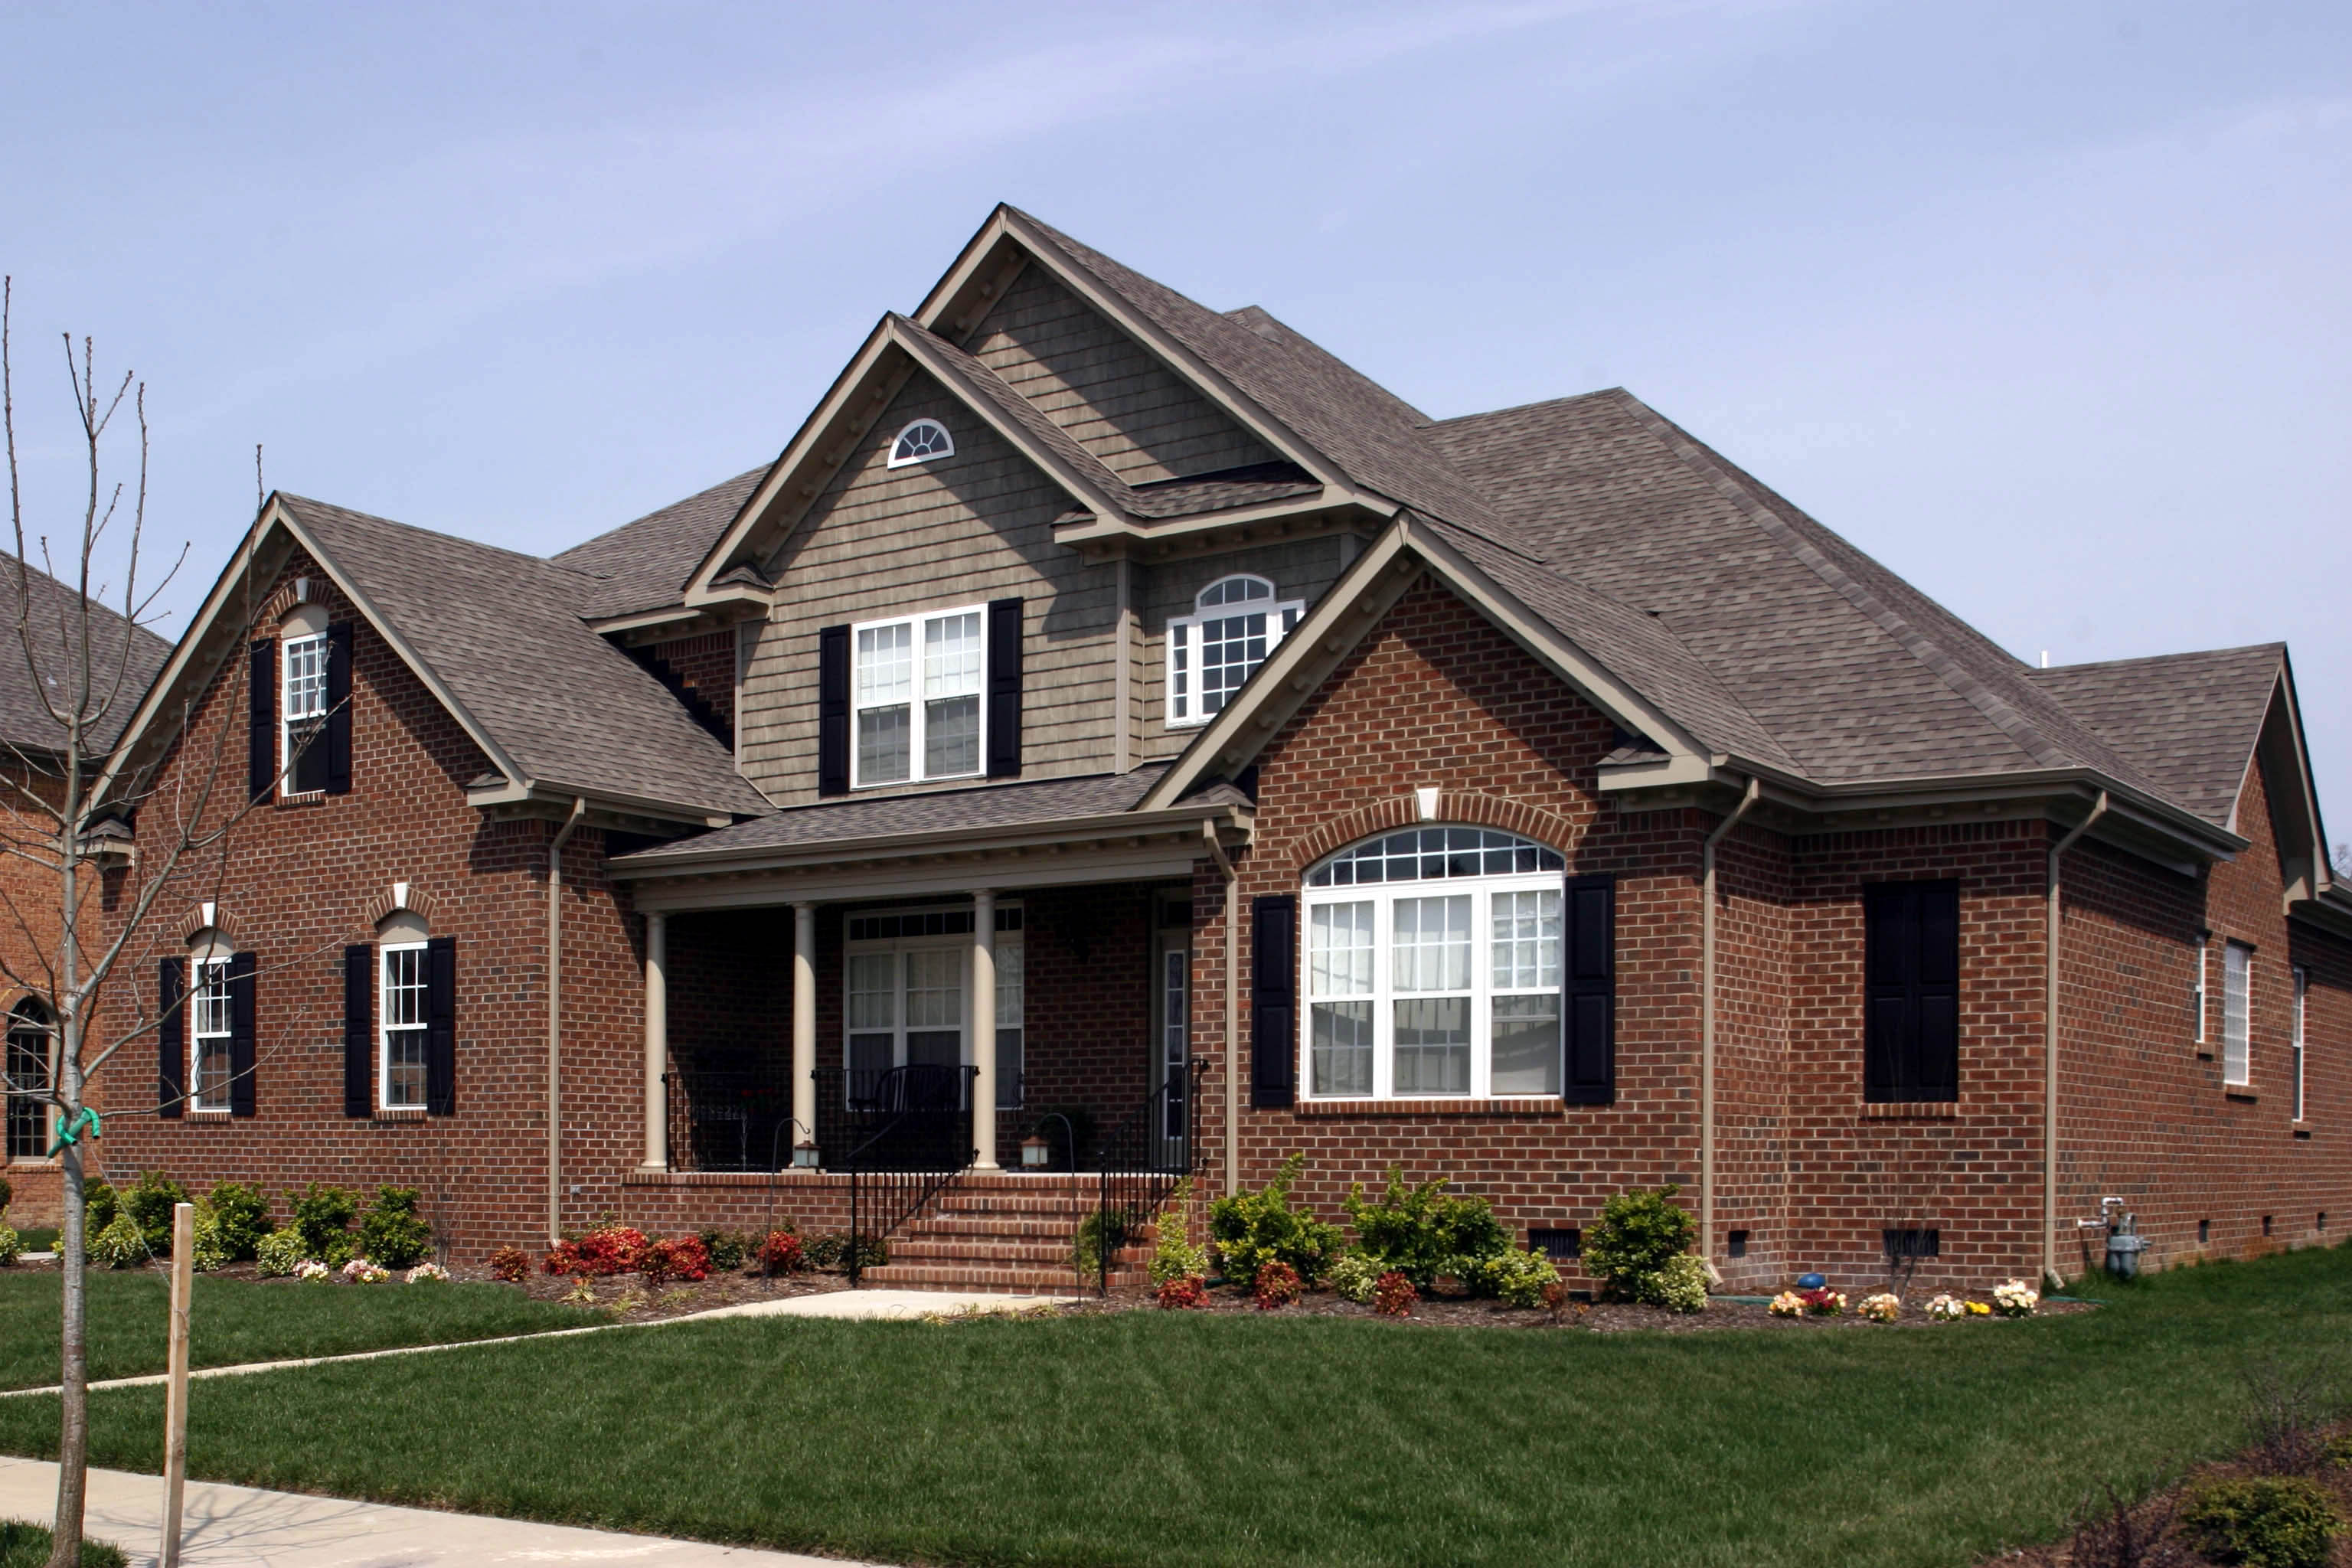 Traditional Home Plan With Brick Exterior - 30052rt